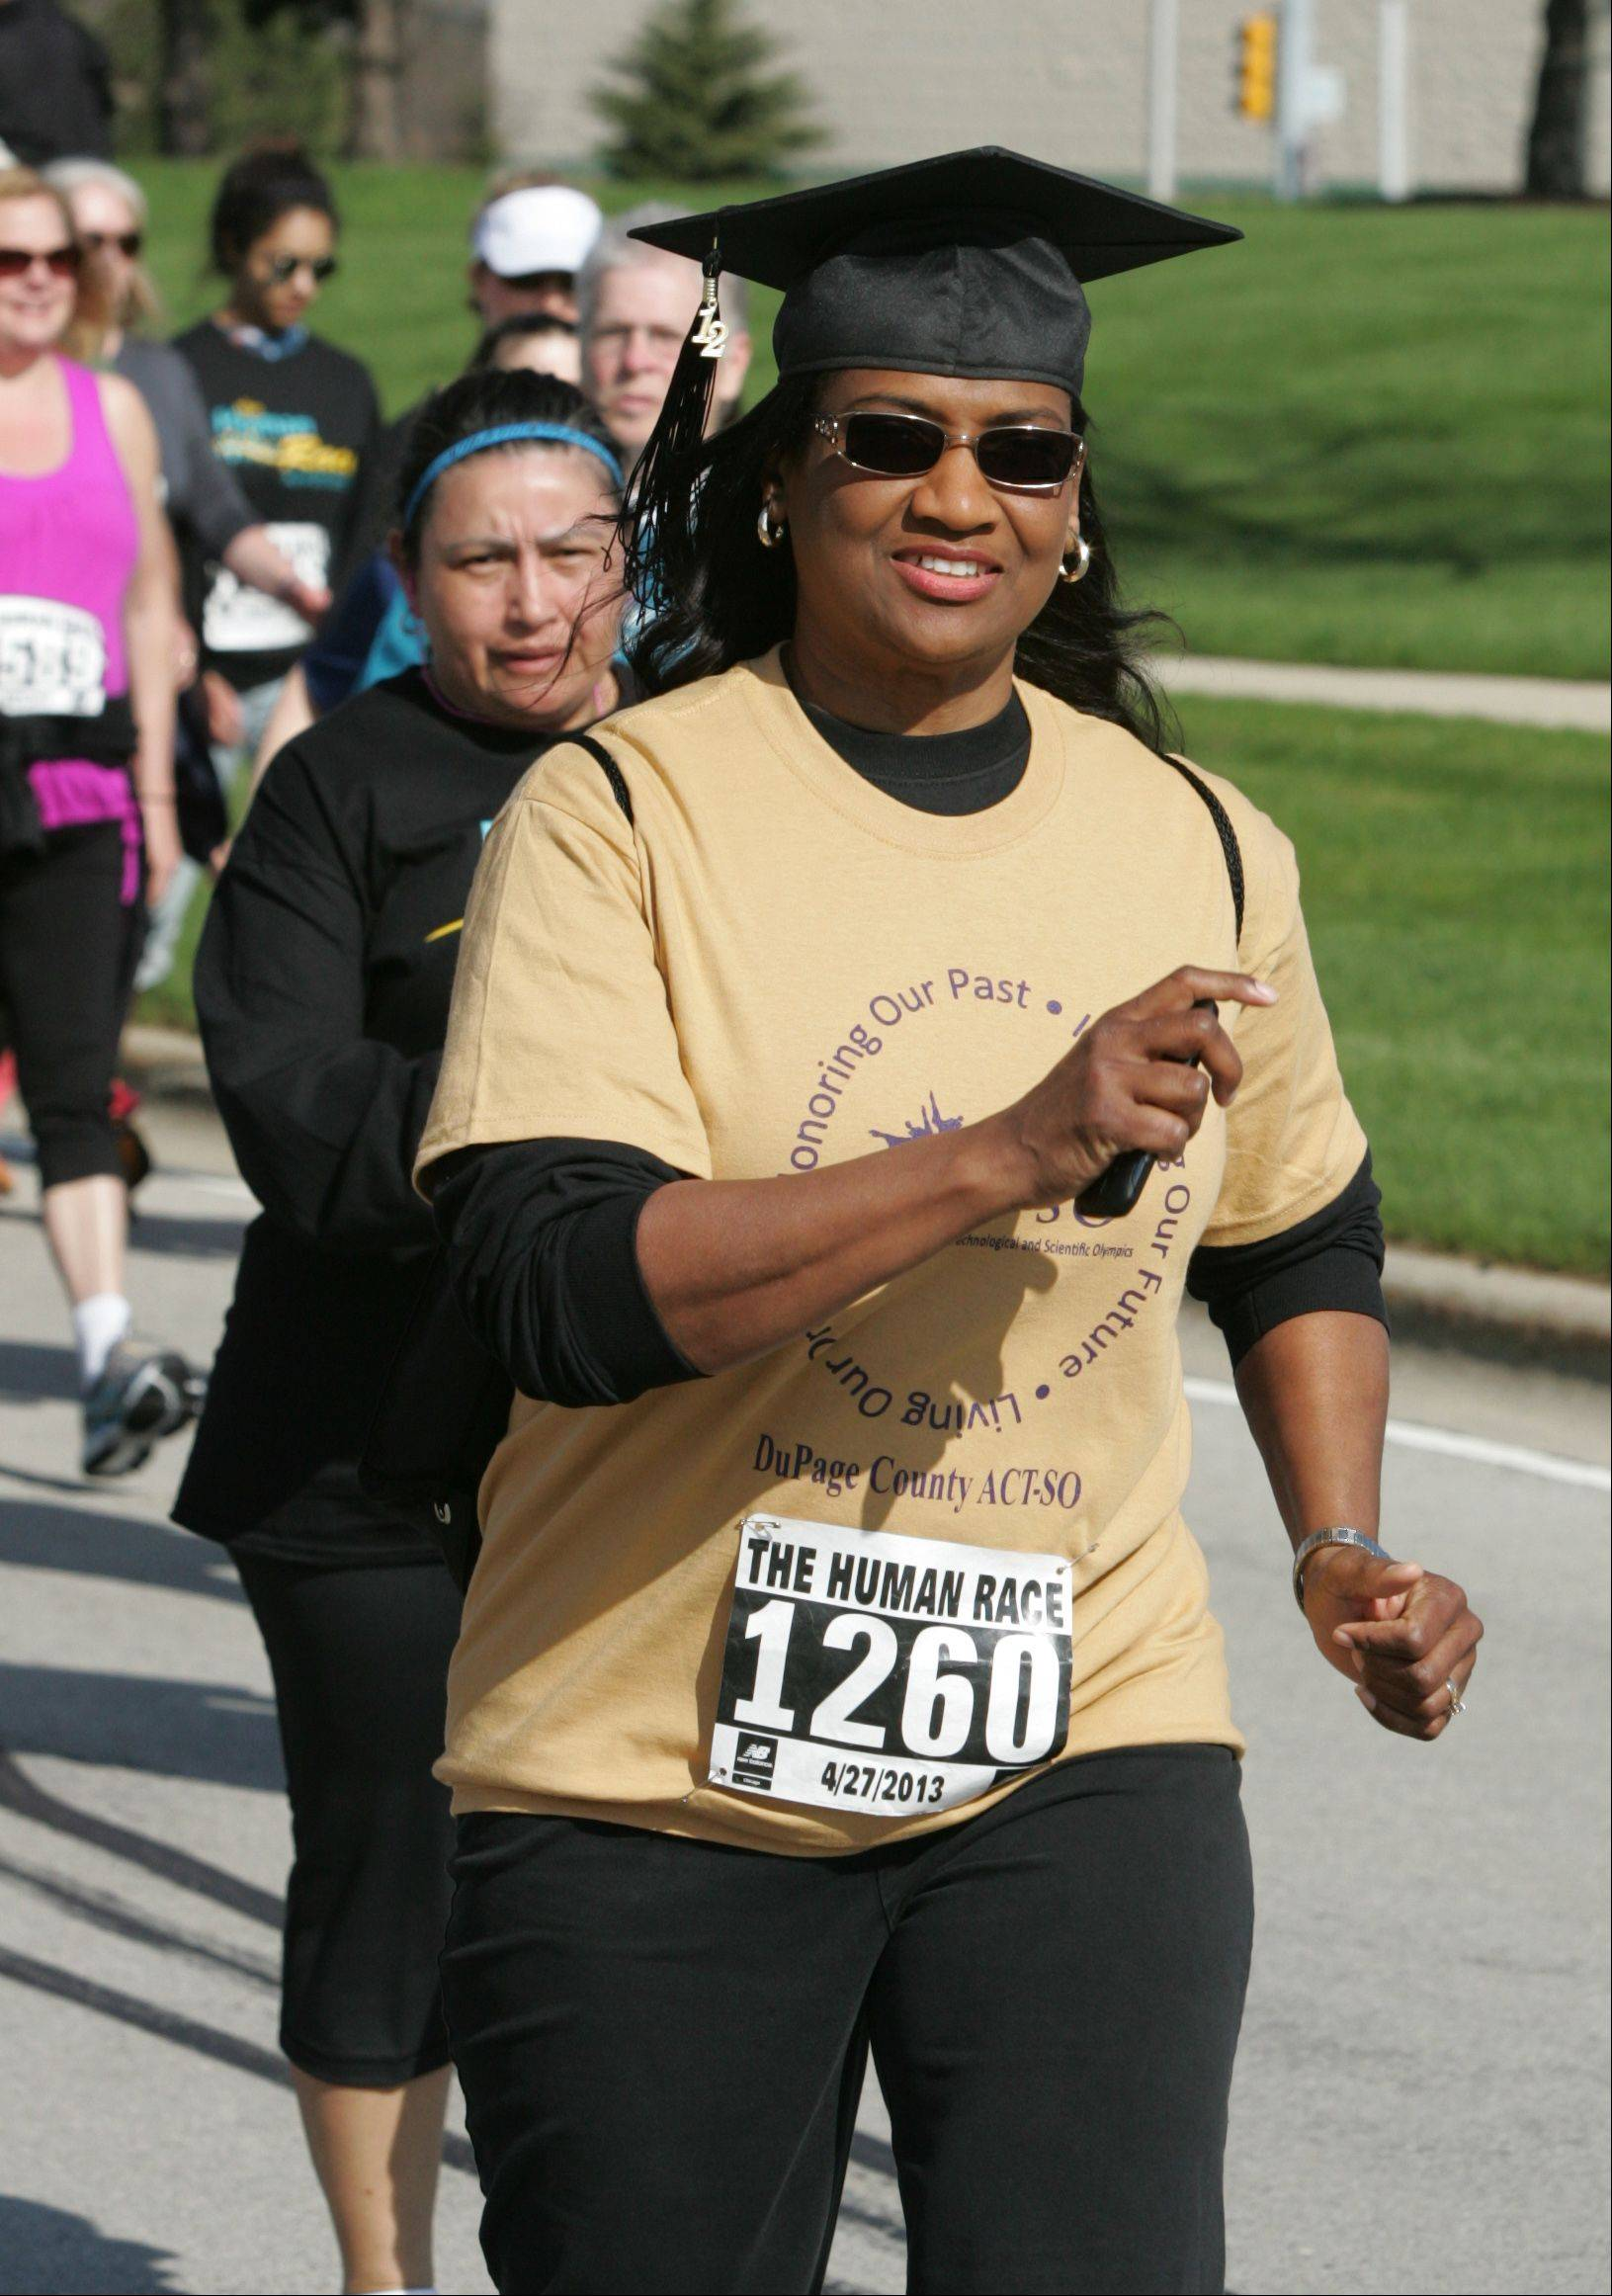 Cynthia Johnson of Lisle is the first walker to cross the finish line Saturday during the second annual Human Race in Downers Grove hosted by Giving DuPage. Johnson participated as co-chairwoman of DuPage County ACT-SO, which stands for the Afro-Academic Cultural, Technological and Scientific Olympics.